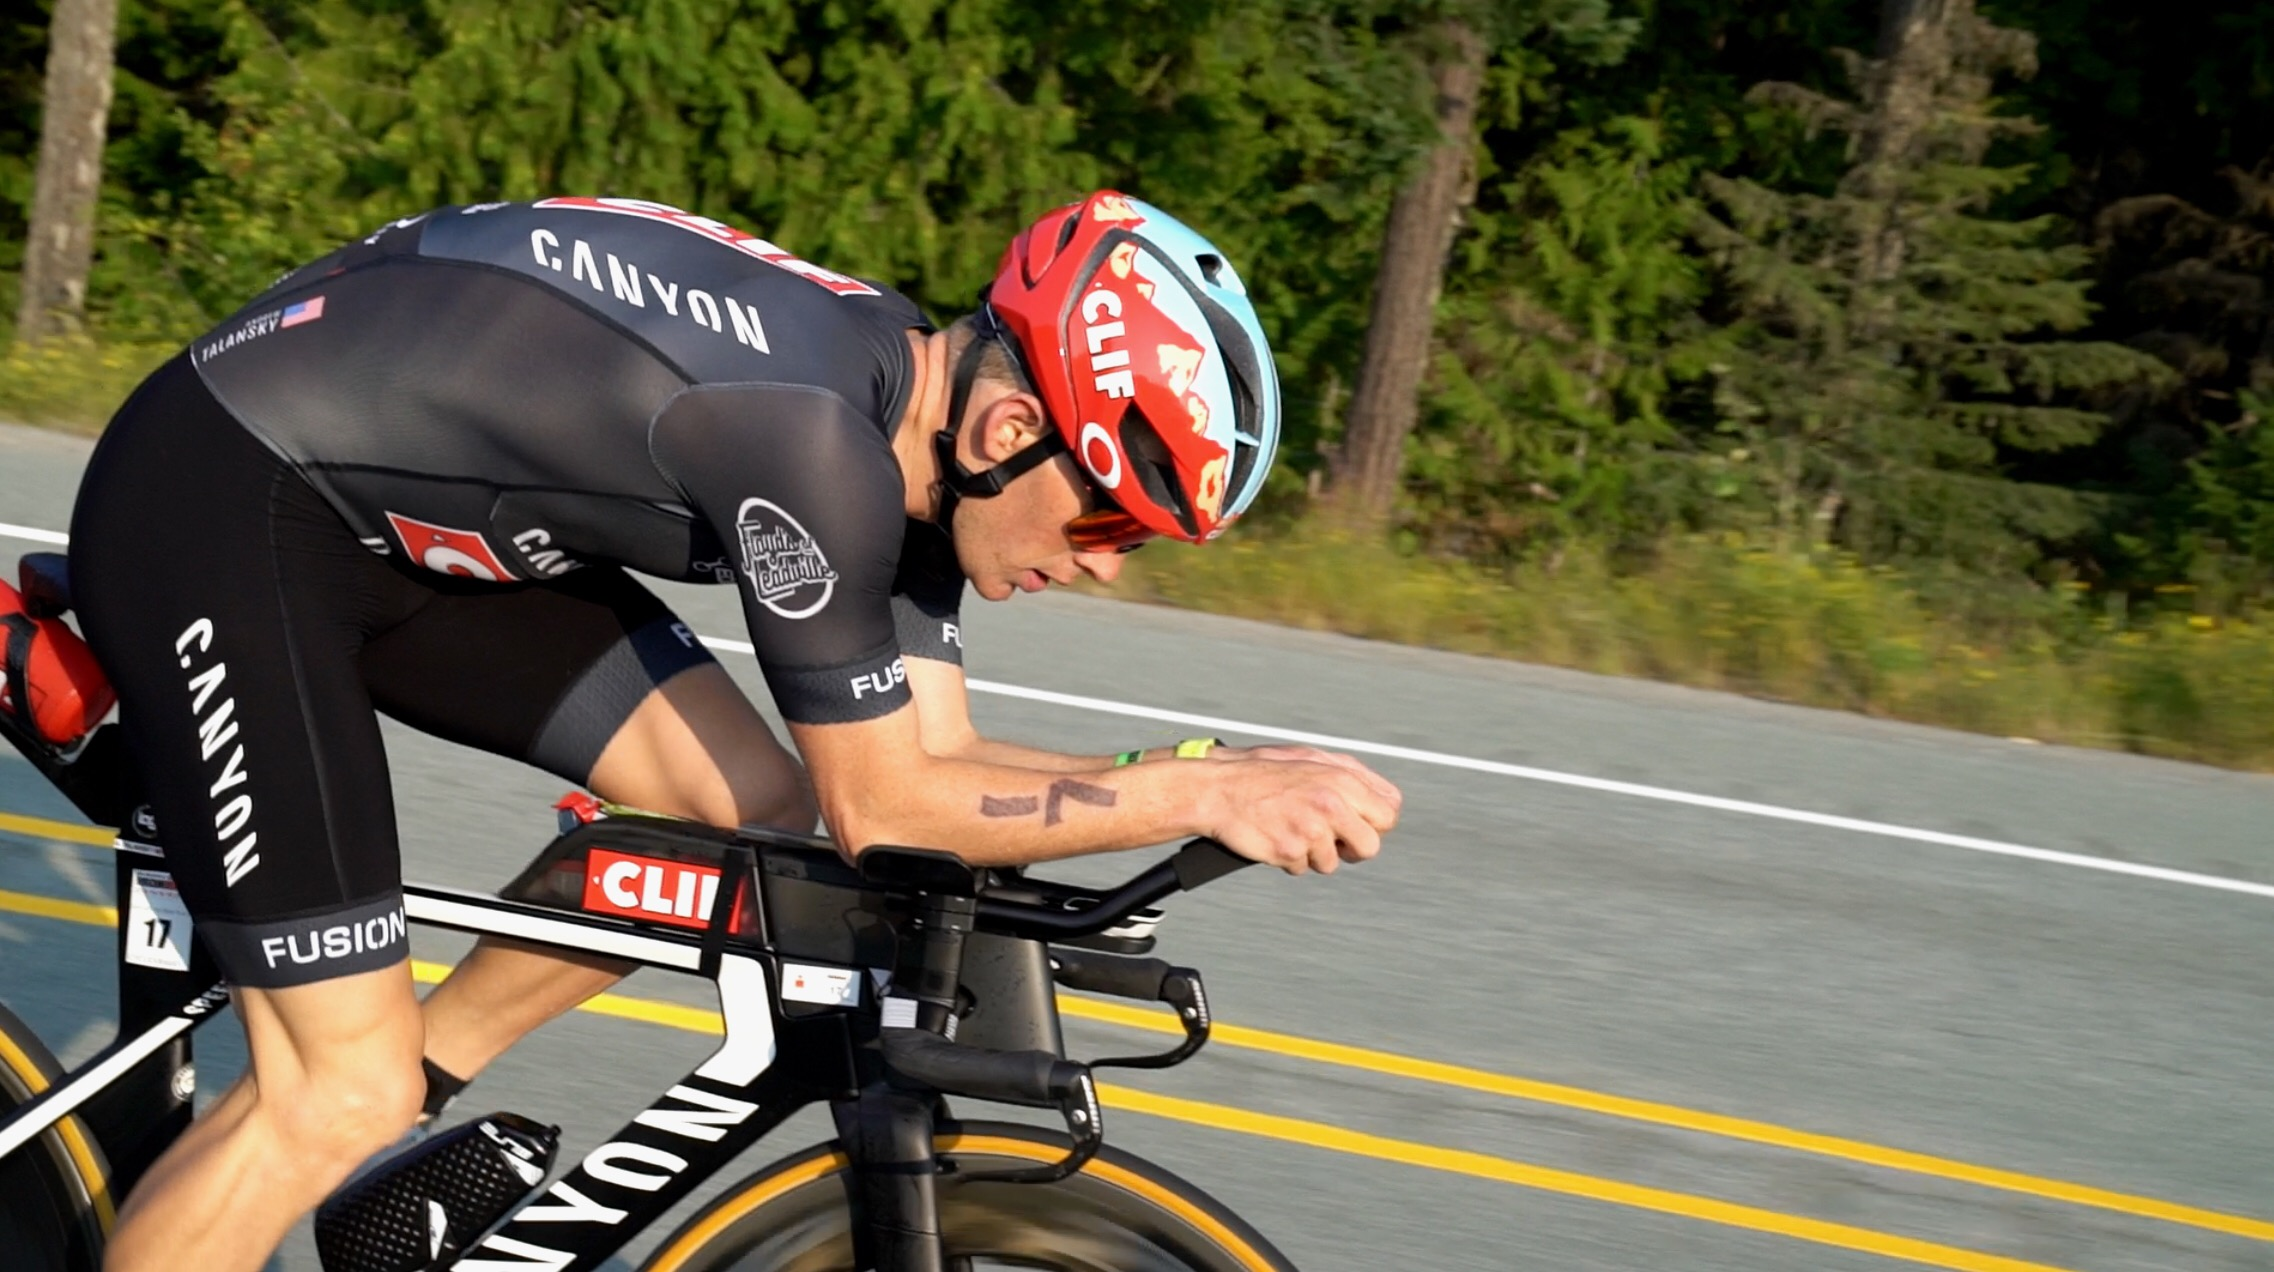 In 2017 Andrew announced his retirement from professional cycling and shortly after, announced his intention to compete in professional triathlon.